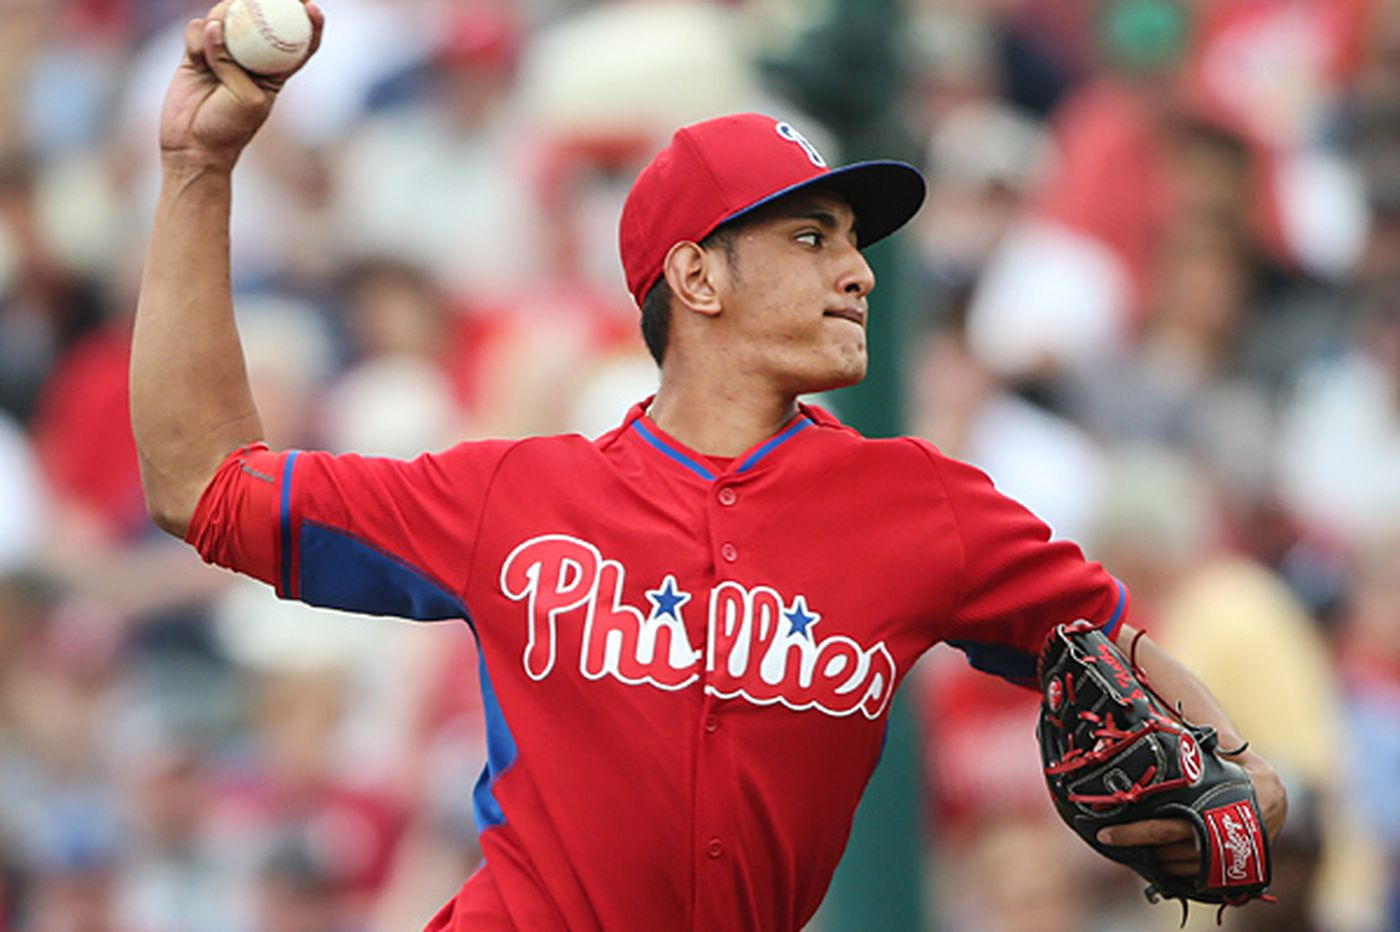 Gonzalez shows signs that he could contribute to Phillies